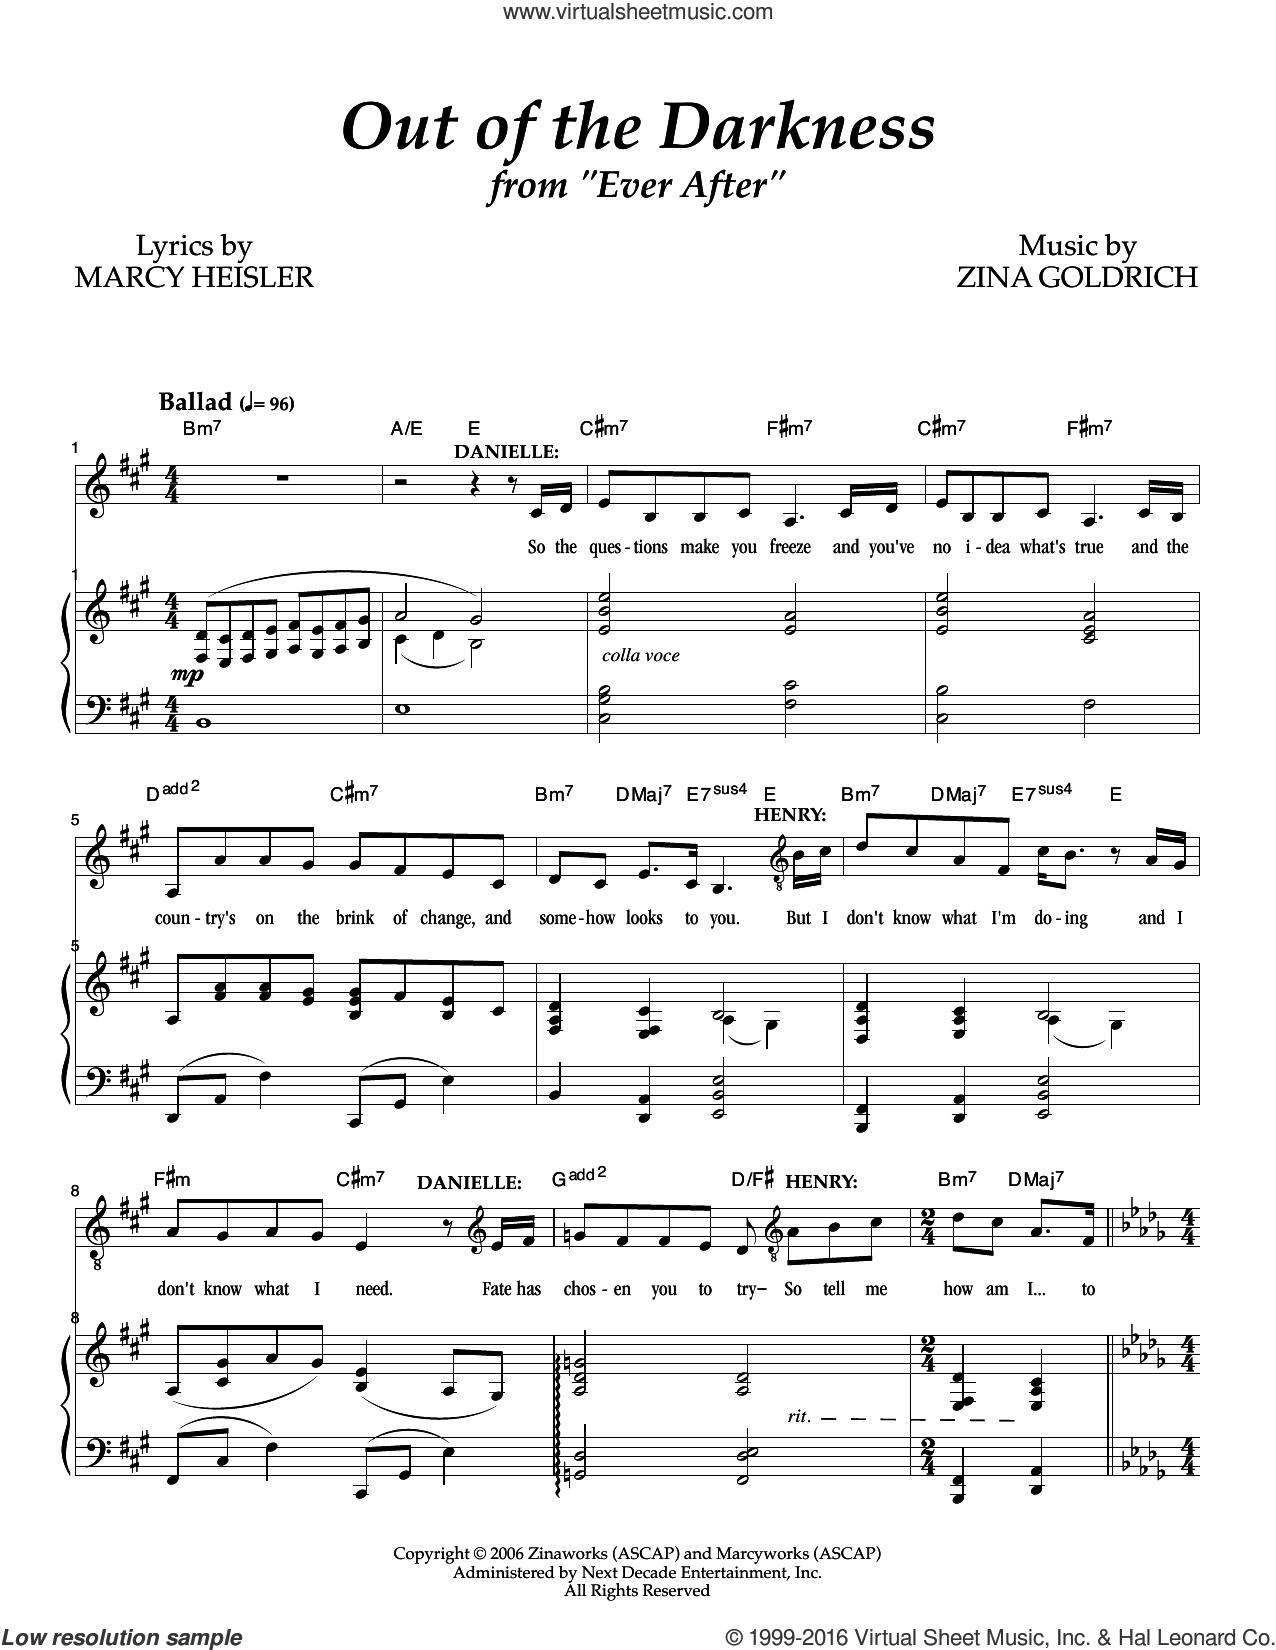 Out Of The Darkness sheet music for voice and piano by Goldrich & Heisler, Marcy Heisler and Zina Goldrich, intermediate